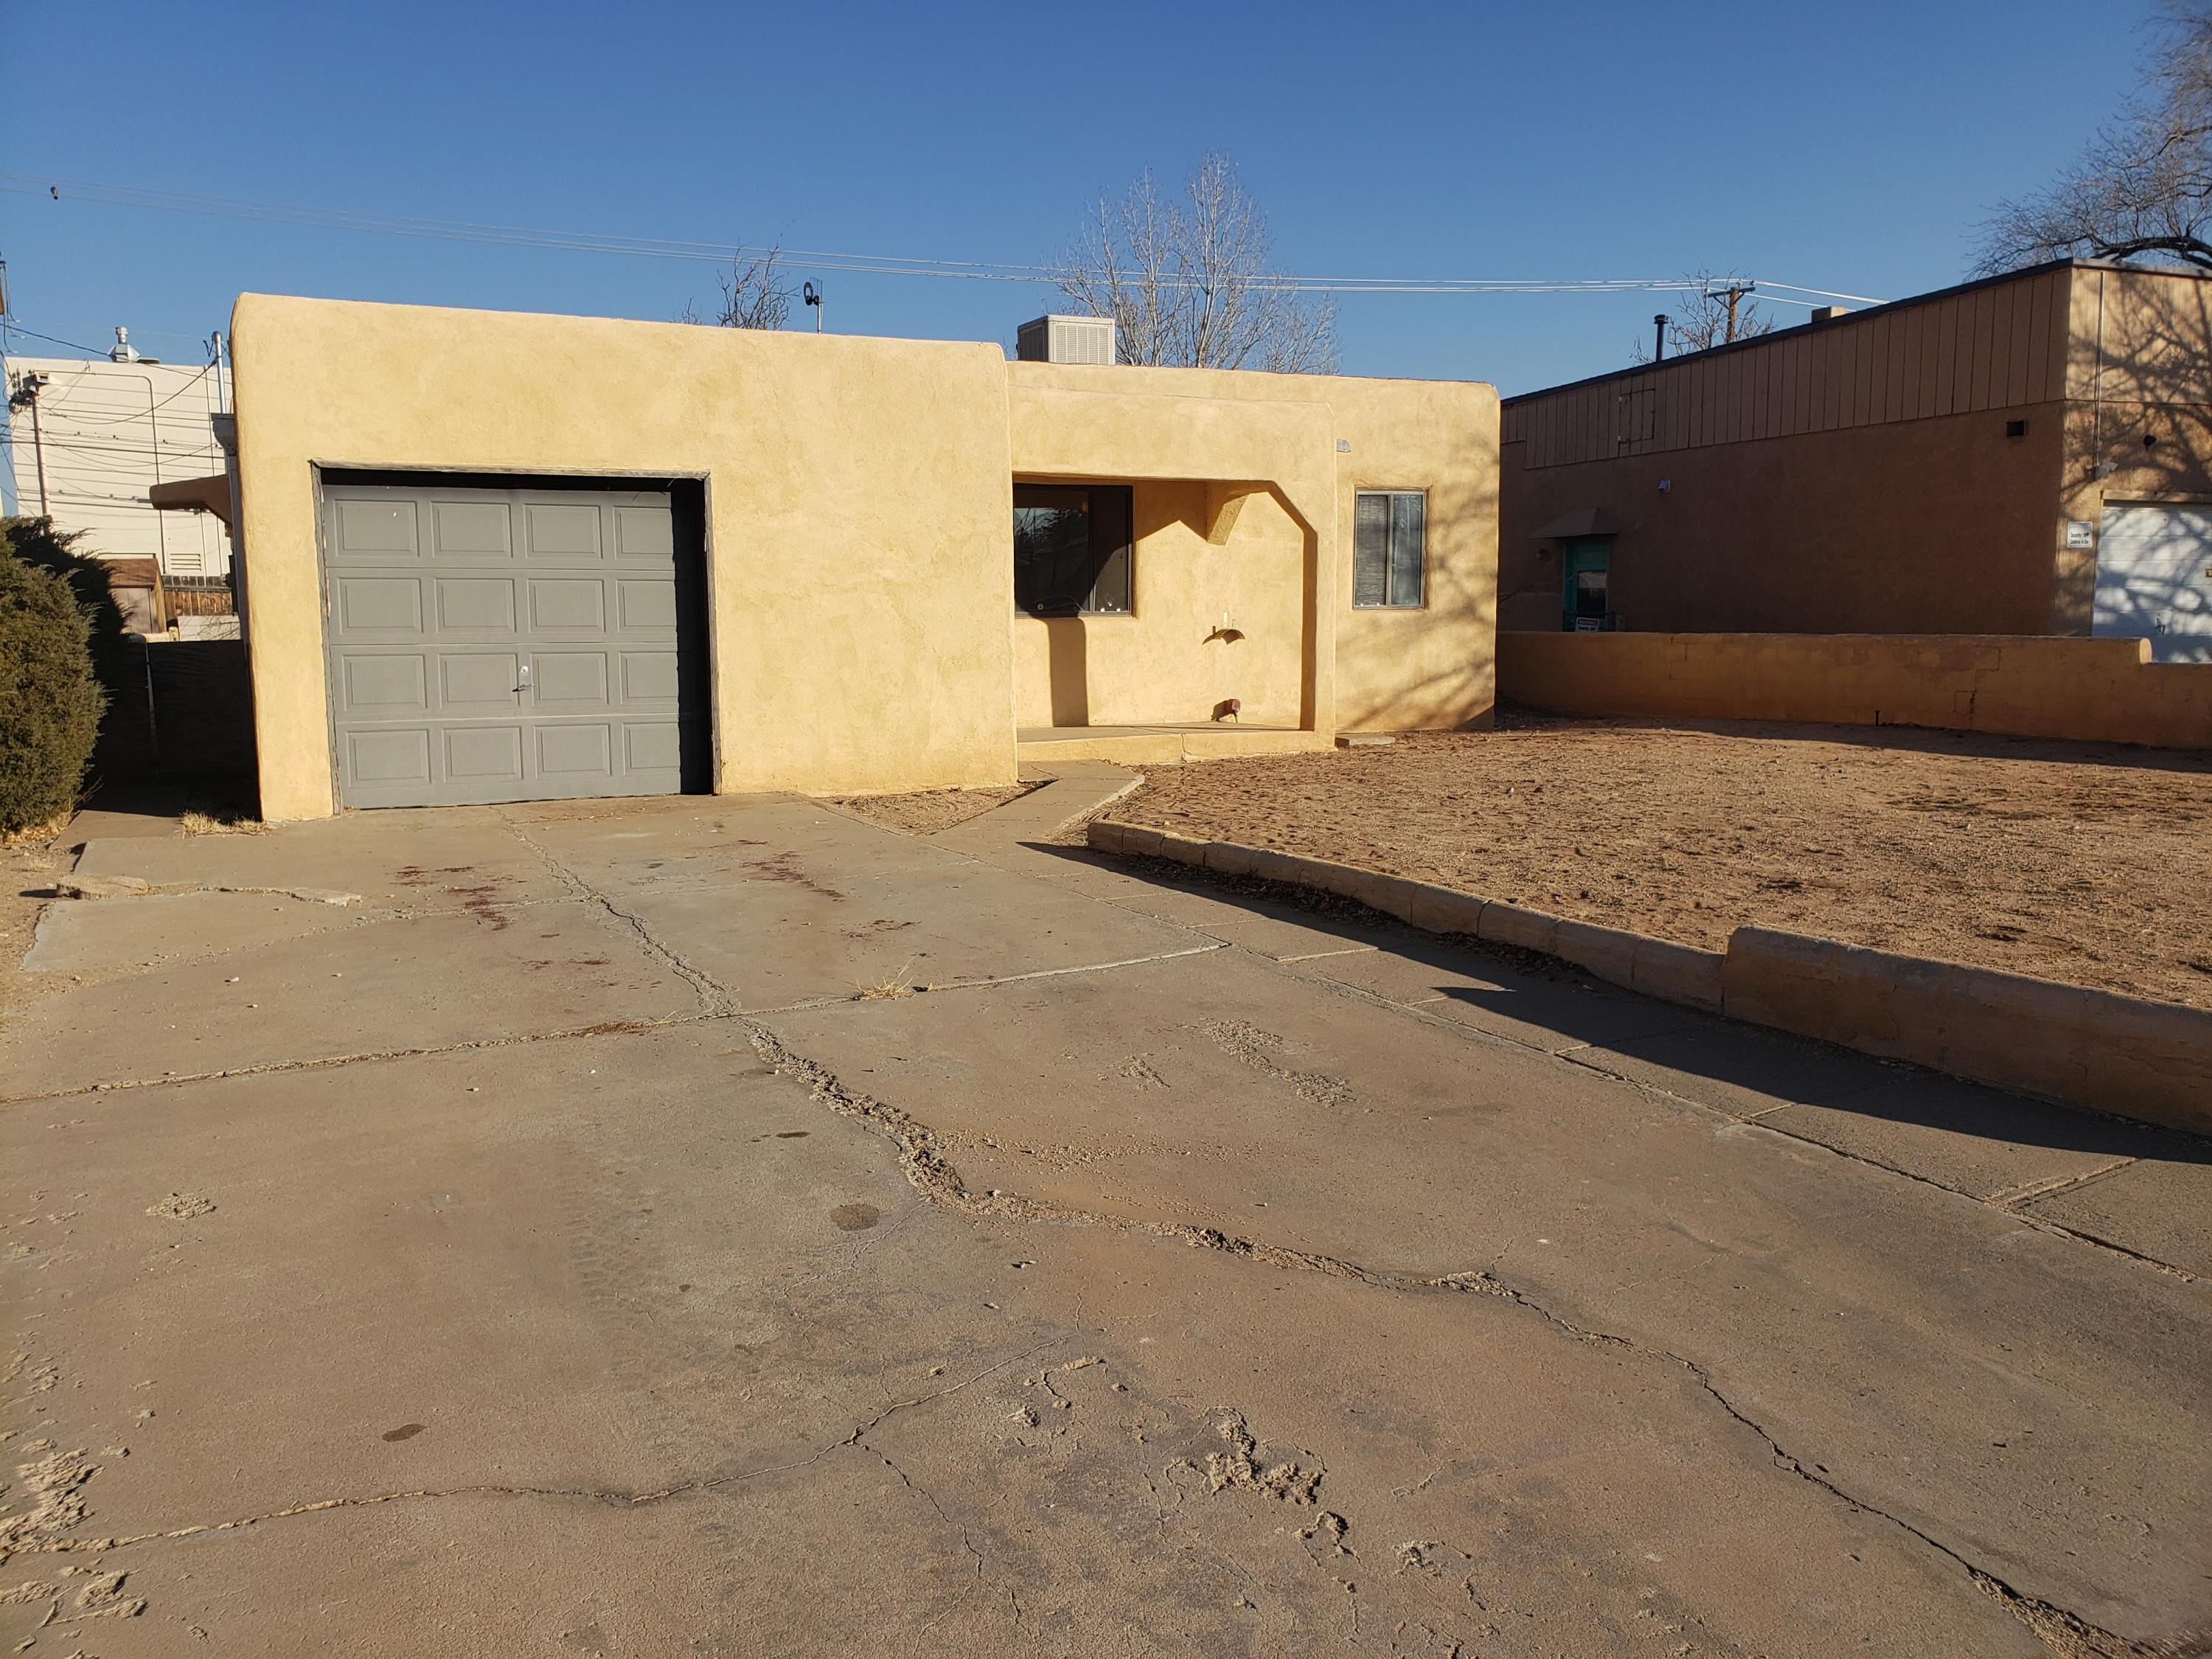 Conveniently located near Kirtland AFB, UNM & the VA hospital, This charming and well-maintained 2 bedroom home is move in ready! With some upgrades, could be a show stopper for its new owner to call home or an investor to rent out for extra income. Newer furnace and thermal pane windows, large living area, large backyard and across the street from elementary school. Make an offer today!